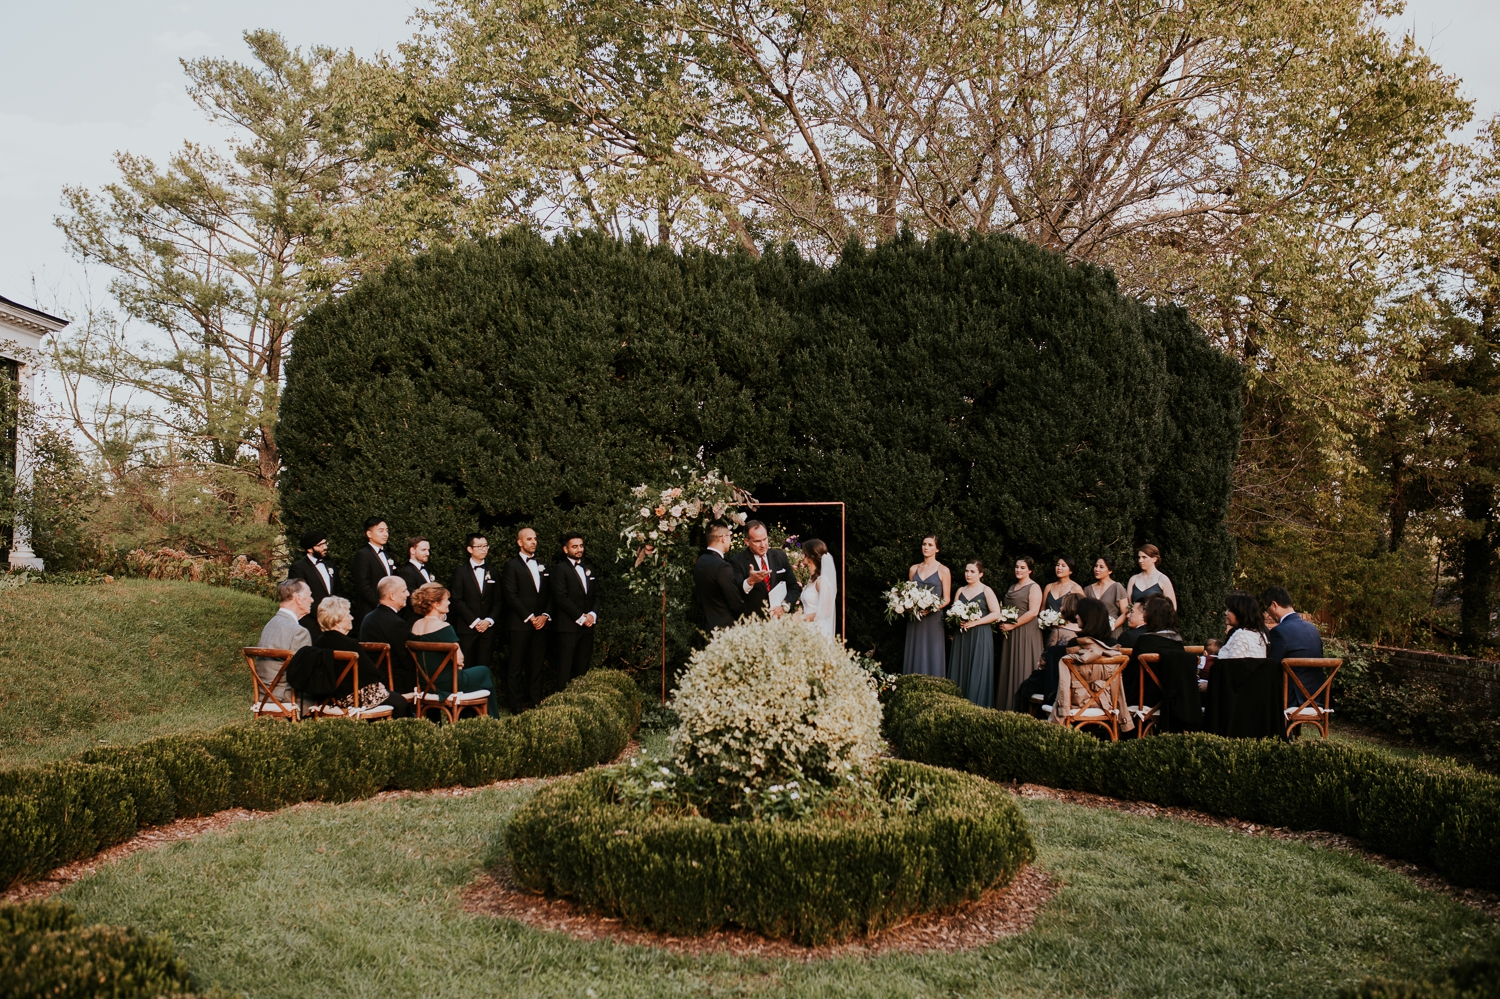 leesburg-virginia-oatlands-historic-house-wedding-photographer-planner-vendors 30.jpg